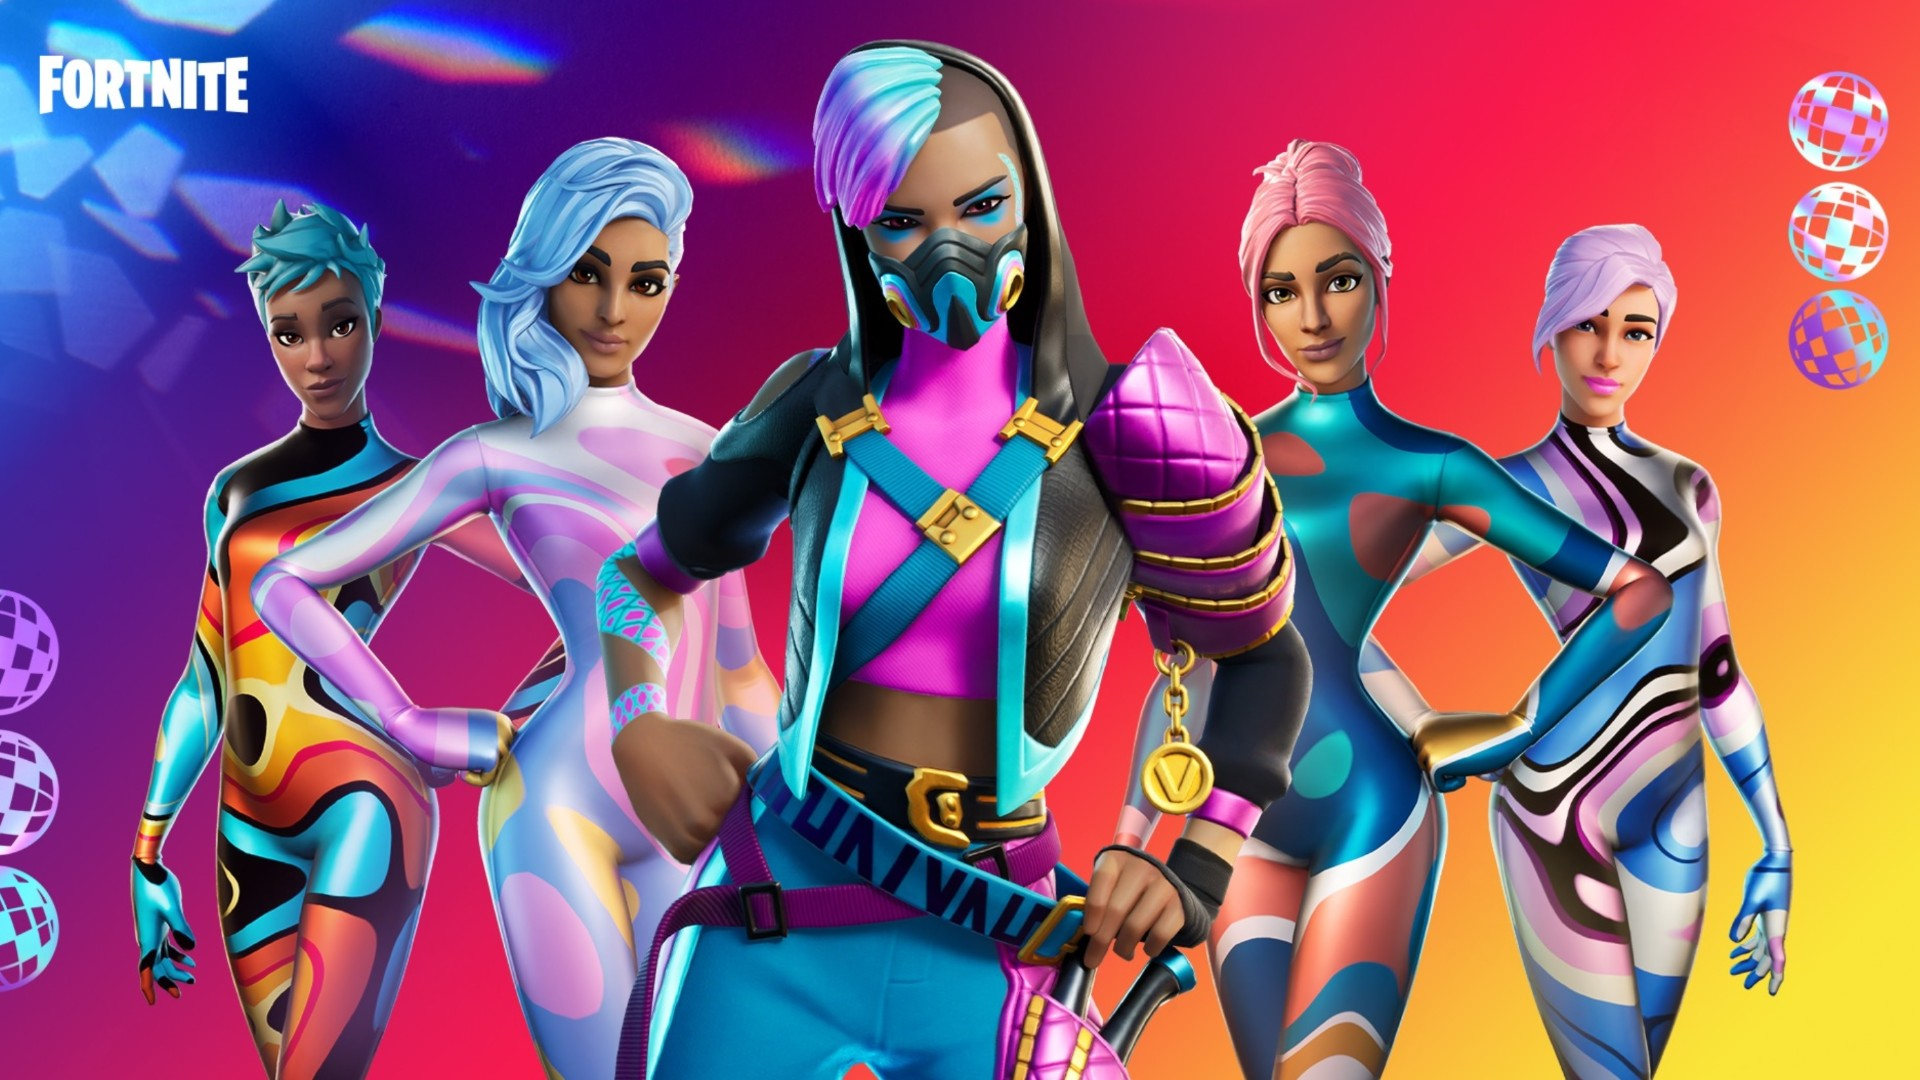 Epic sues Google after Fortnite is kicked off the Play Store